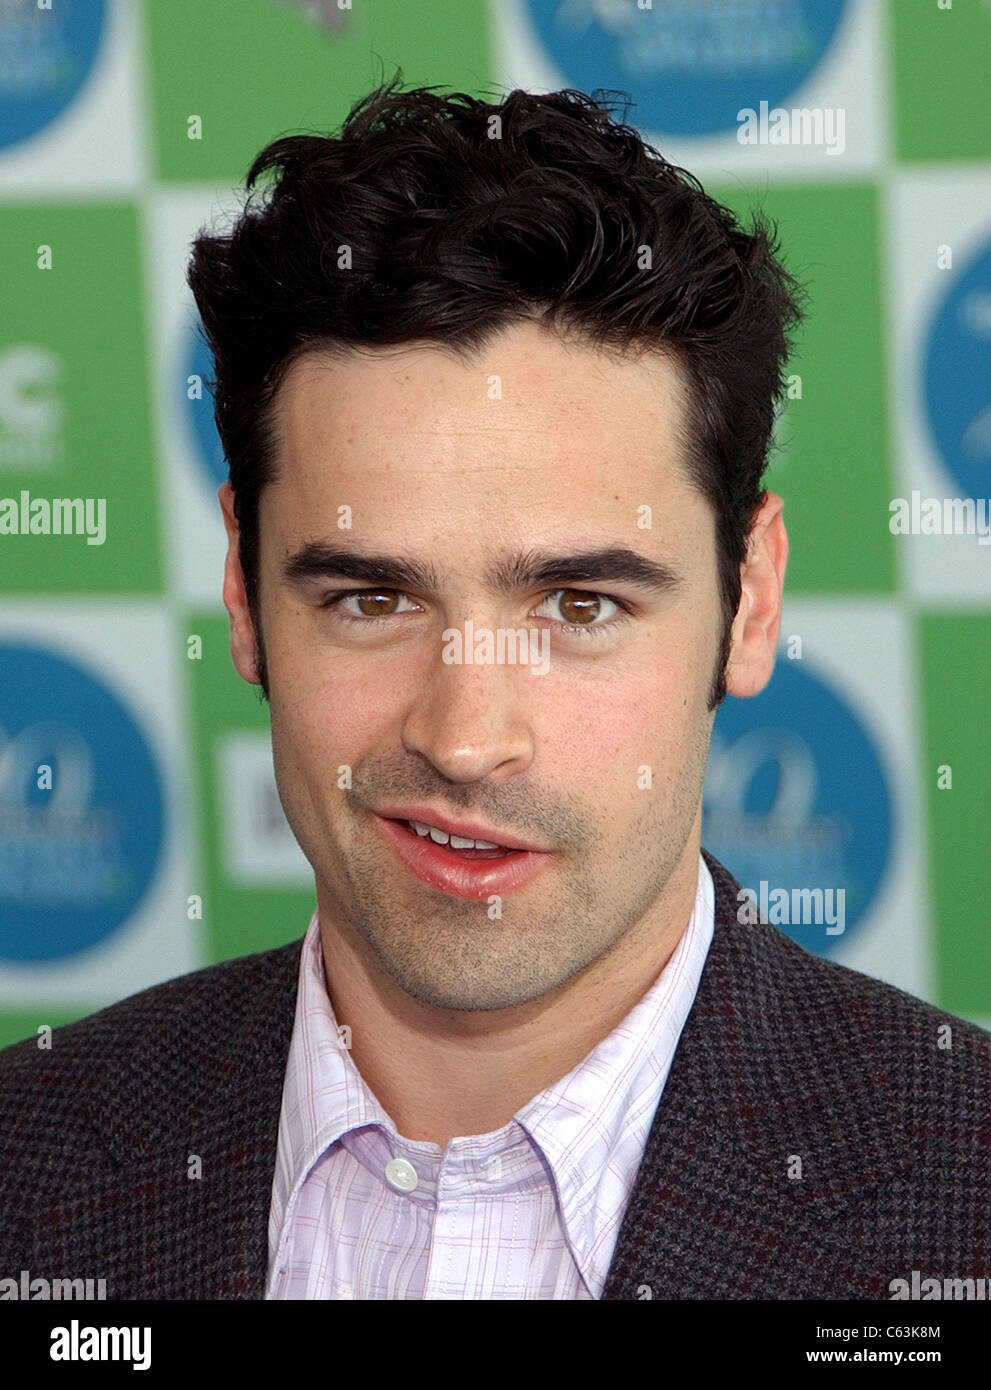 Jesse Bradford at arrivals for 20th IFP Independent Spirit Awards, Los Angeles, CA, Saturday, February 26, 2005. - Stock Image